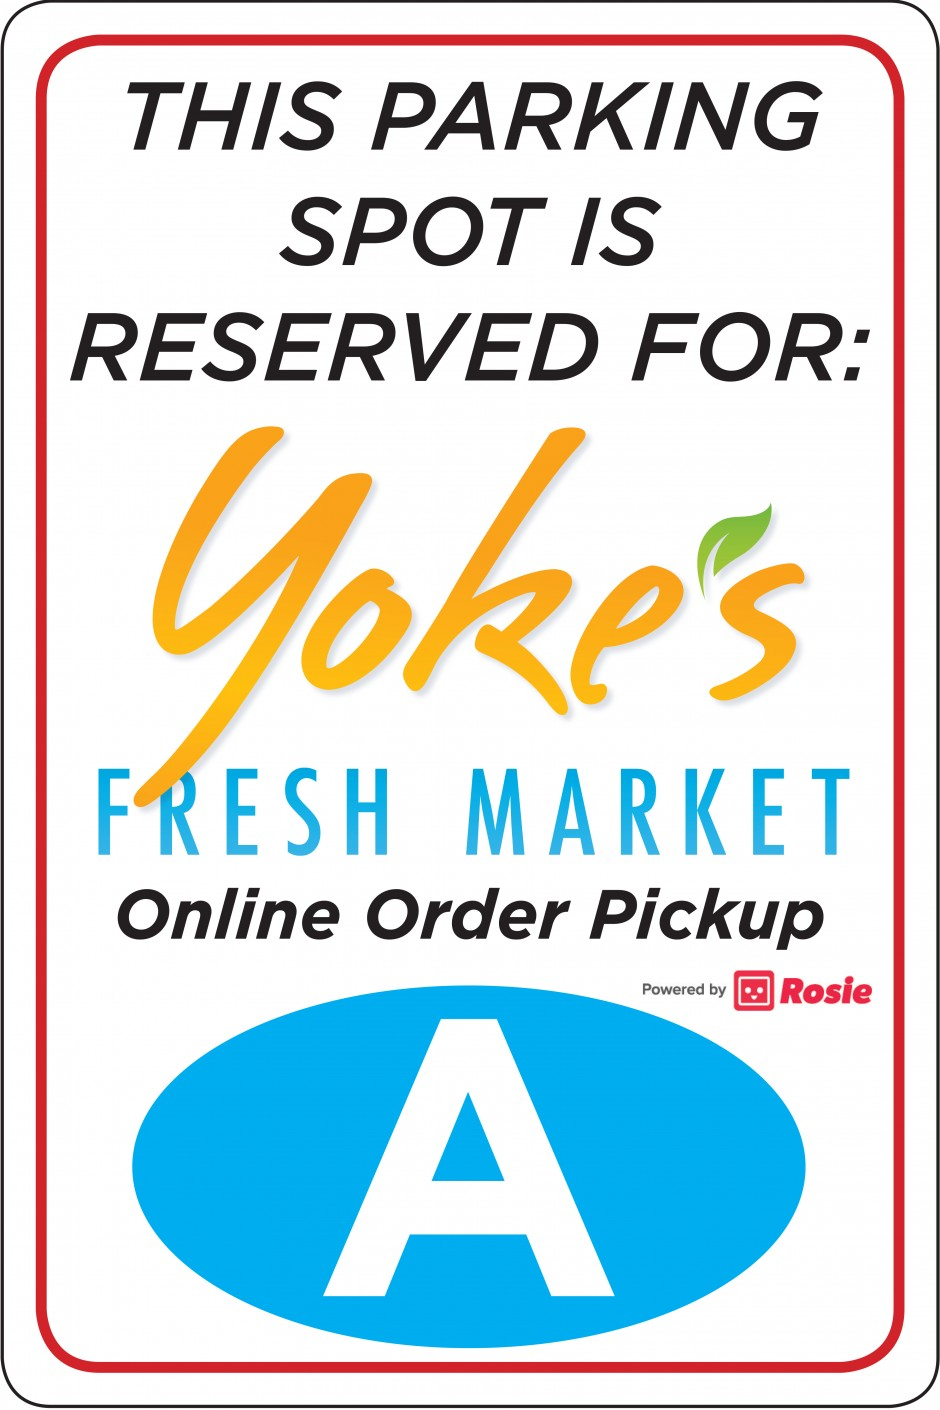 https://www.yokesfreshmarkets.com/sites/default/files/styles/large/public/products/image/unknown-8.jpeg?itok=oW1_K2Md